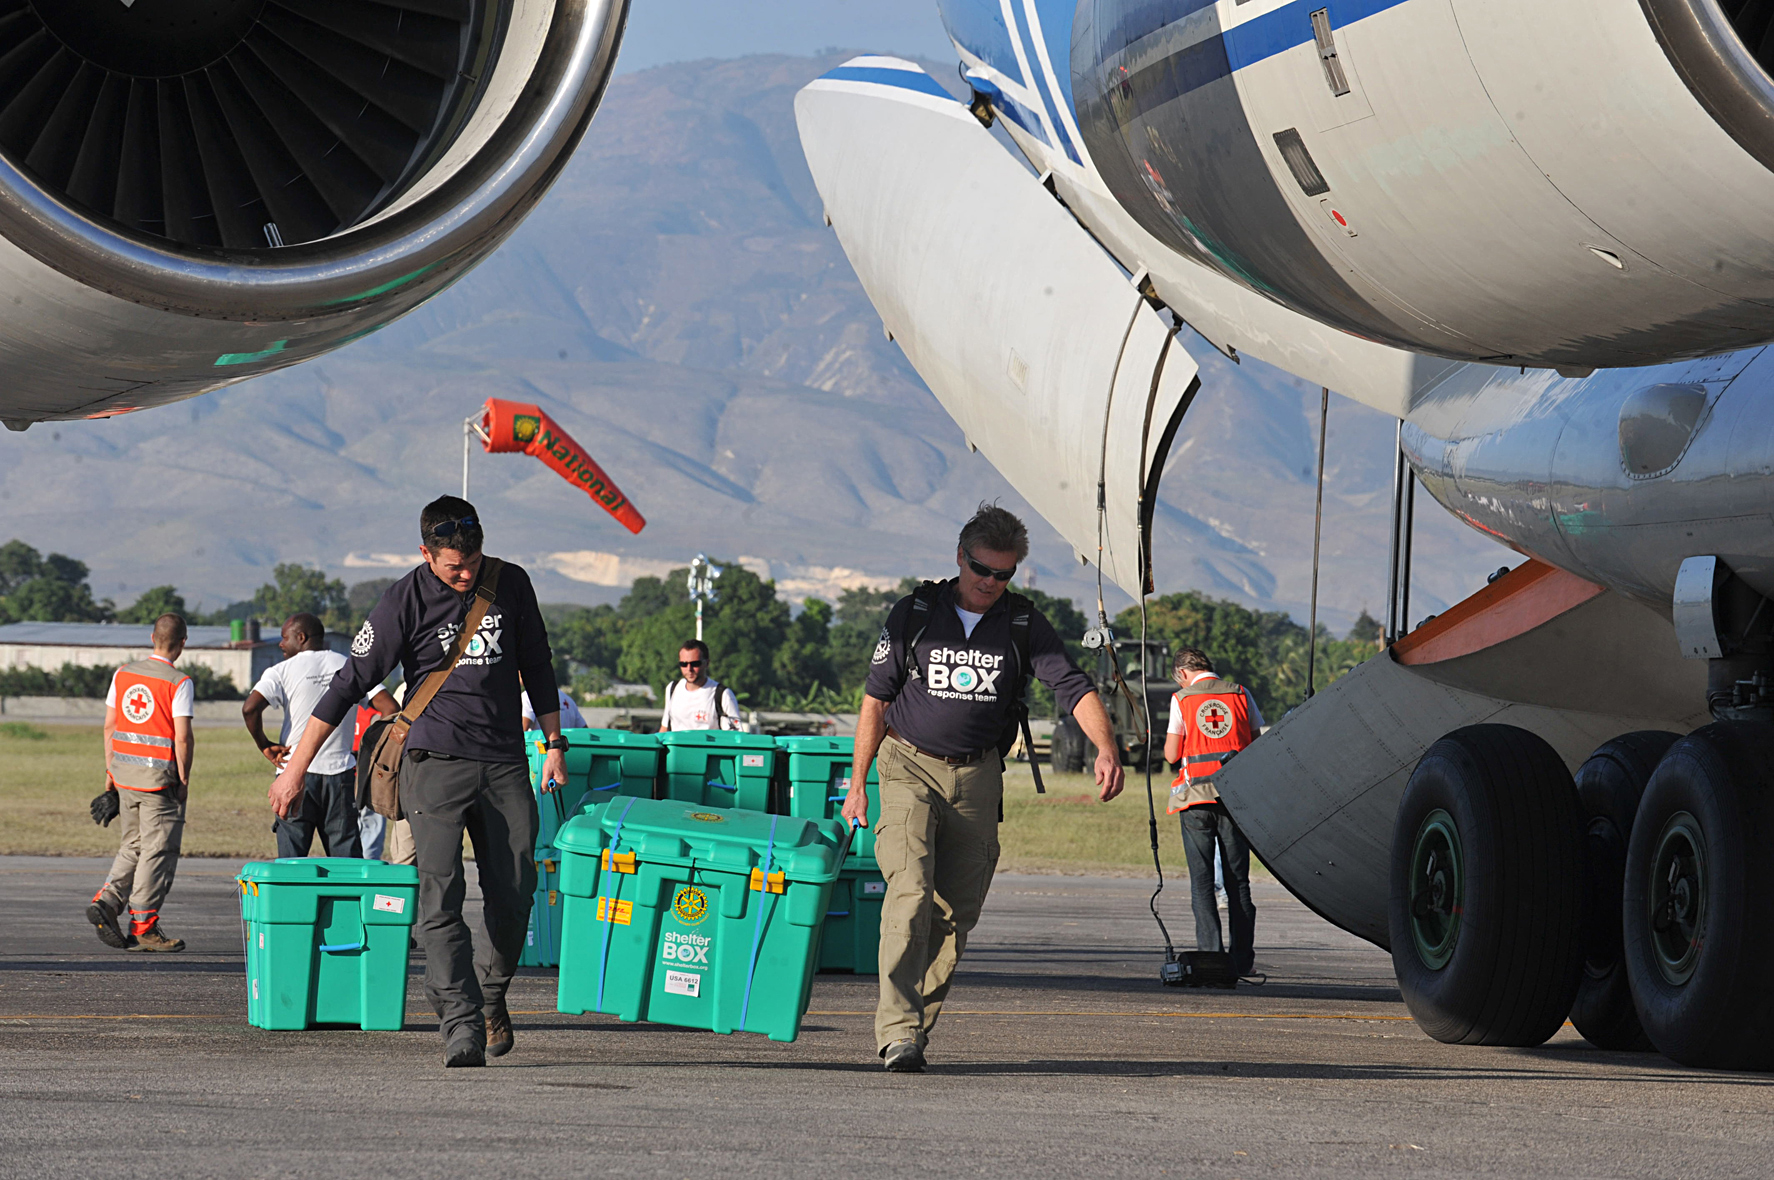 ShelterBox Response Team unloads aid in Haiti in response to the 2010 earthquake.